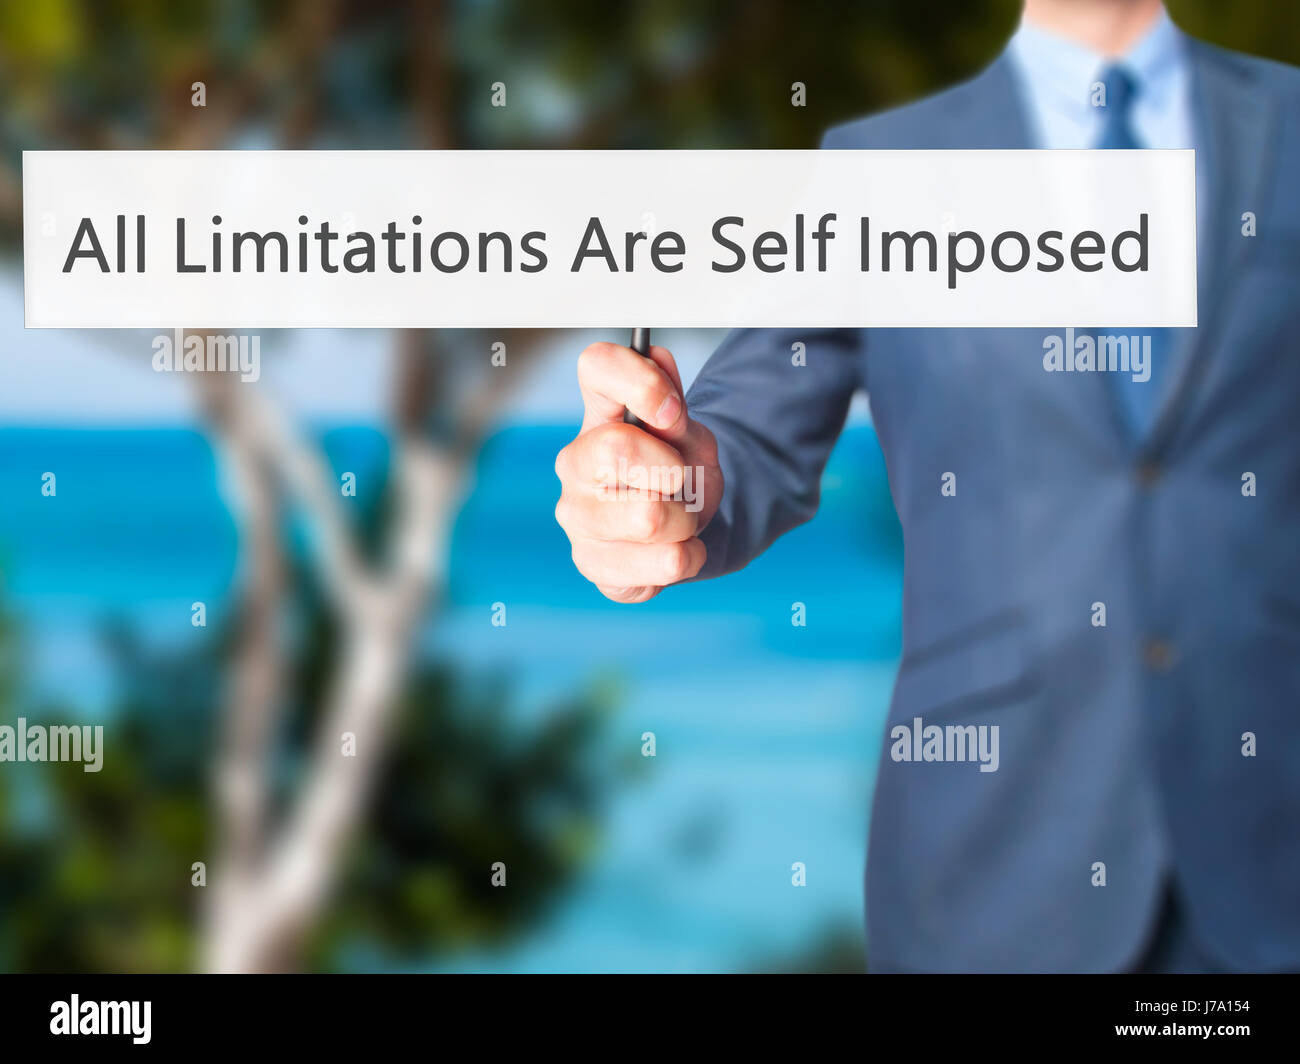 All Limitations Are Self Imposed - Businessman hand holding sign. Business, technology, internet concept. Stock - Stock Image